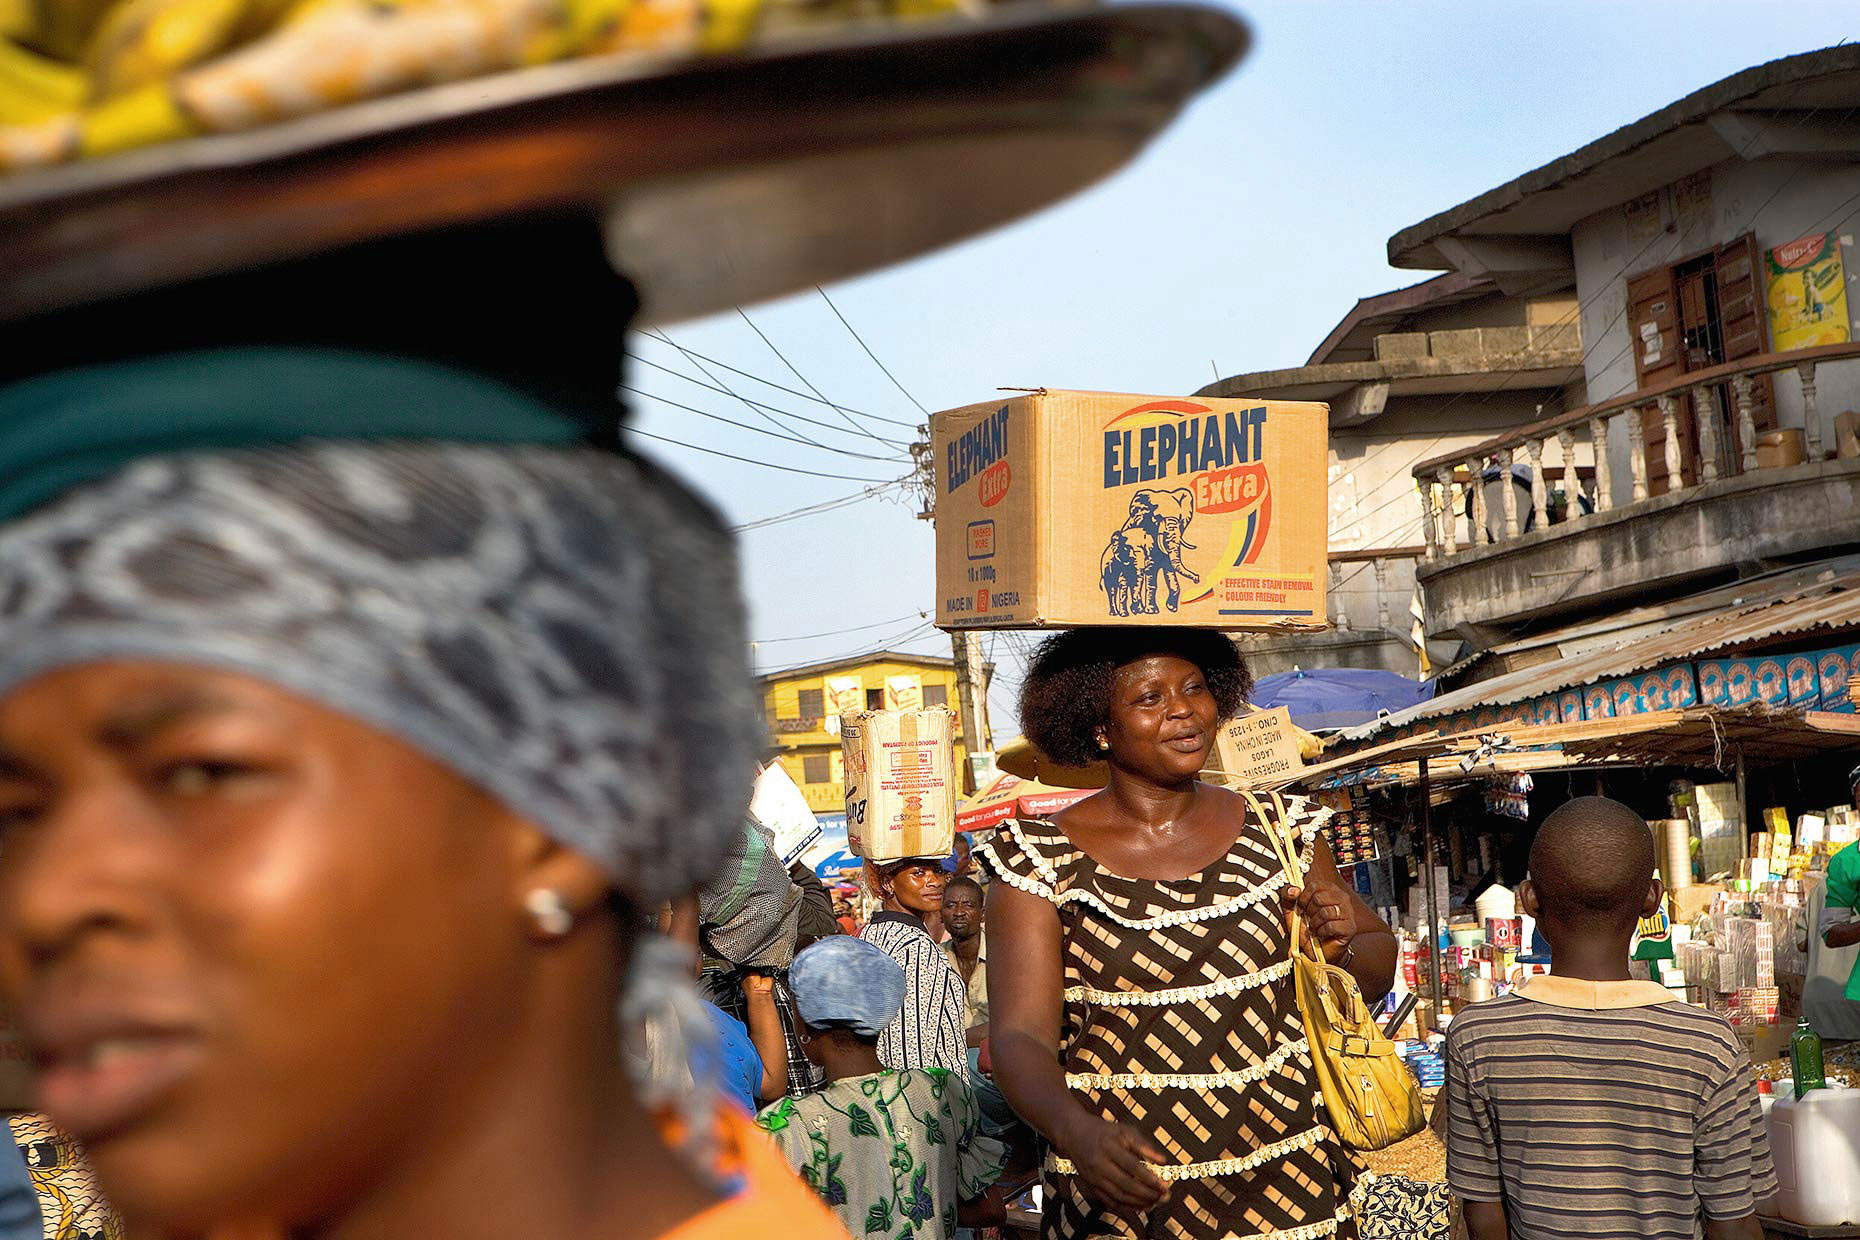 Woman carrying box on head through market